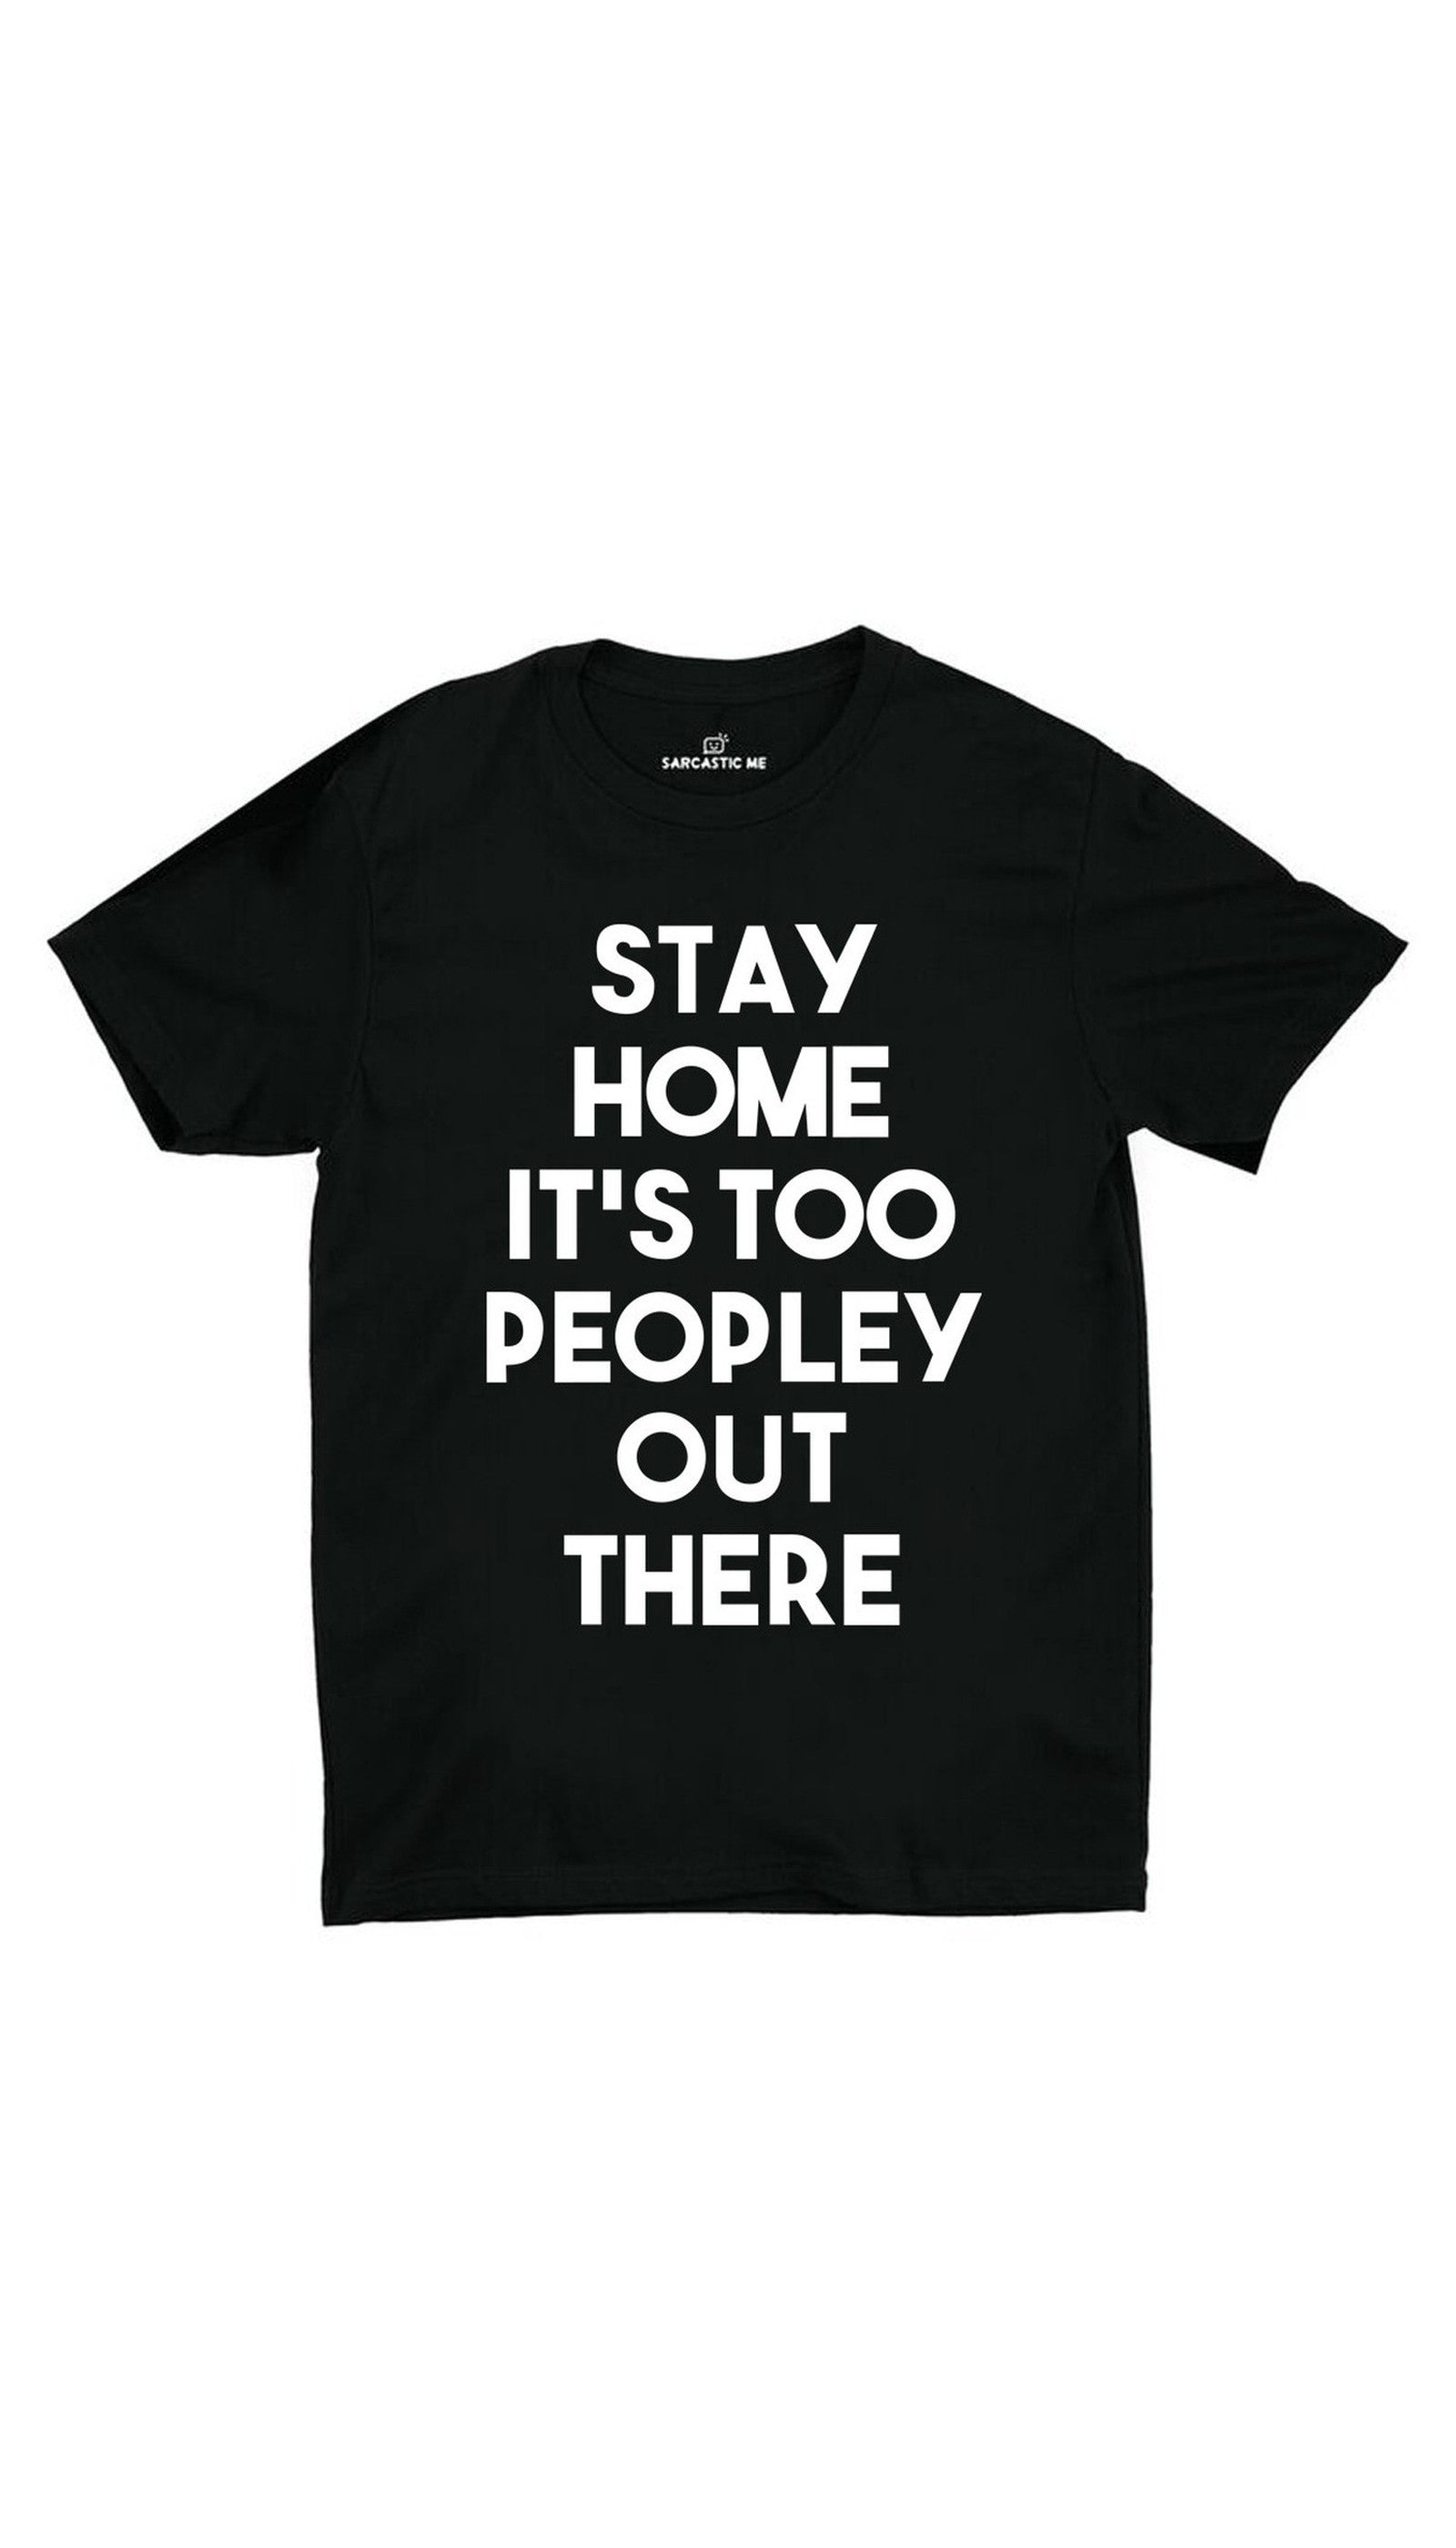 Stay Home It's Too Peopley Out There Black Unisex T-shirt | Sarcastic ME